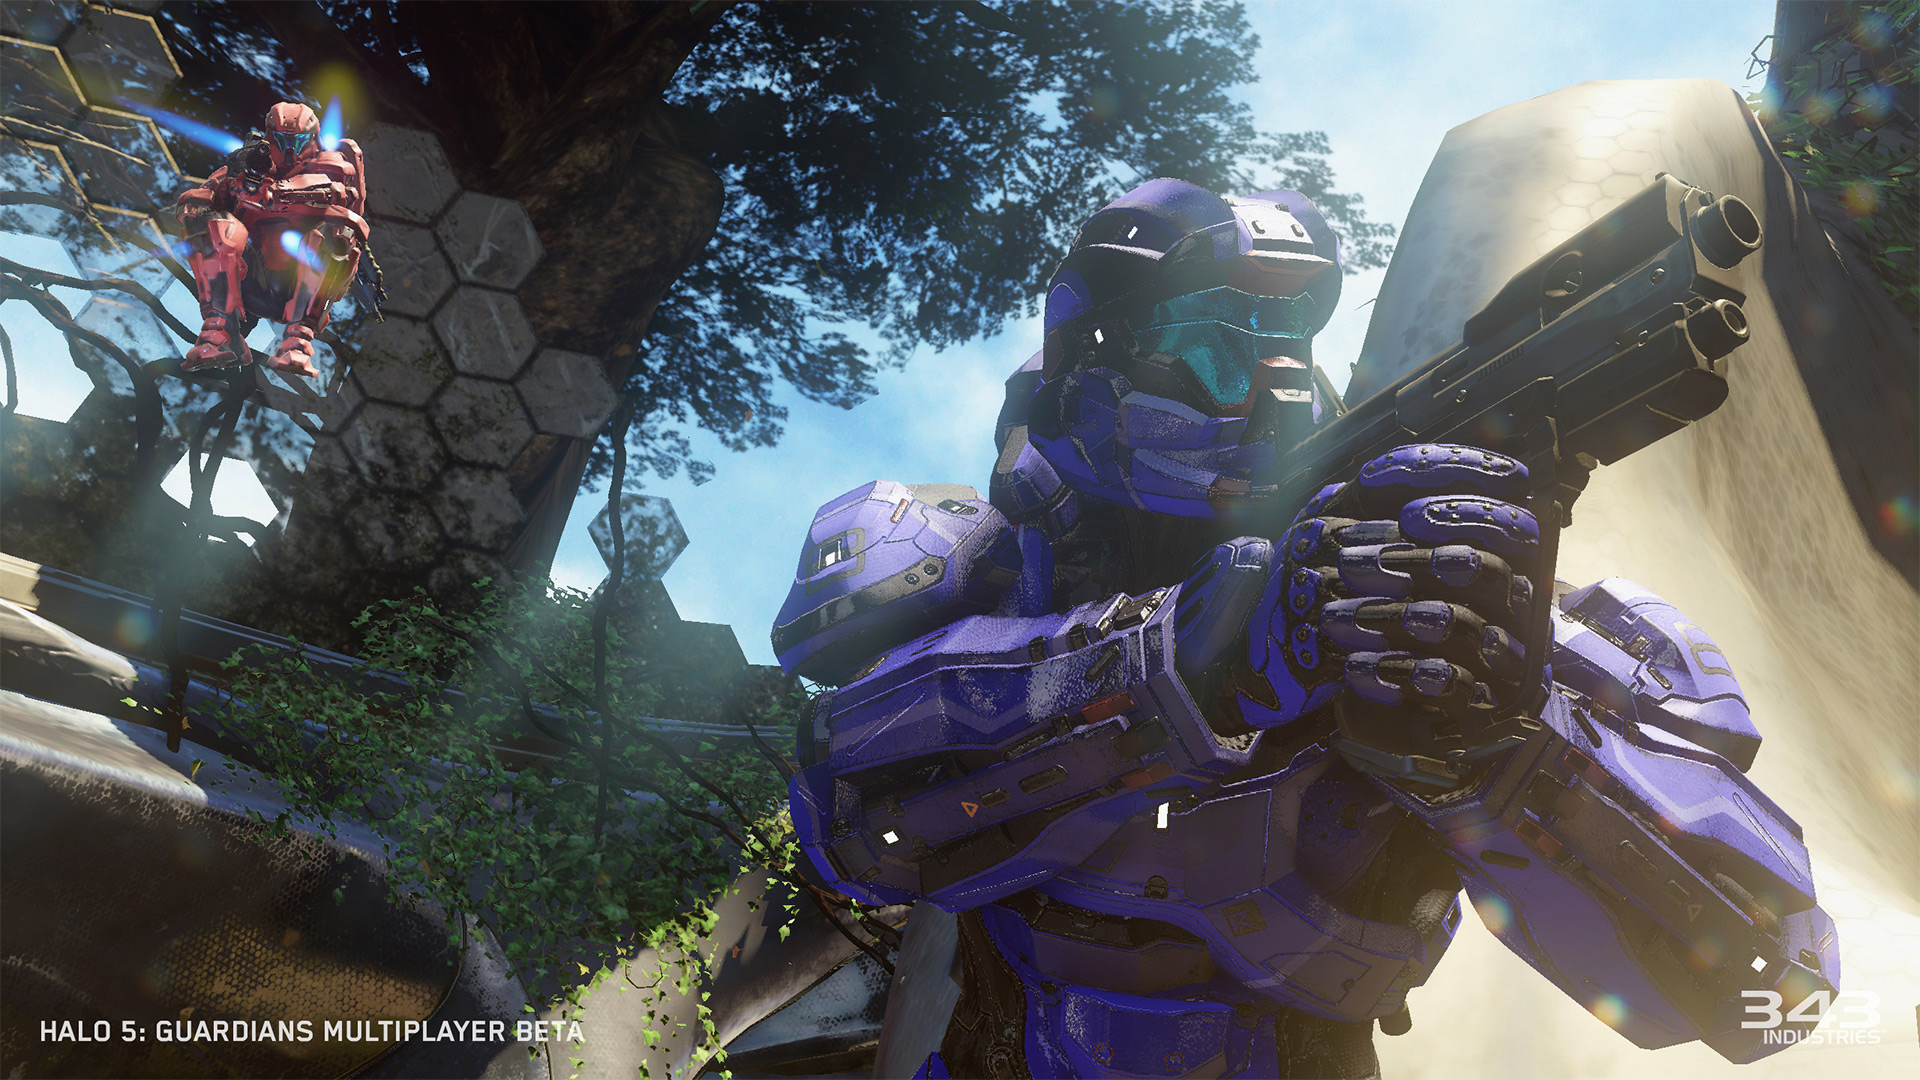 Halo 5 beta matchmaking issues